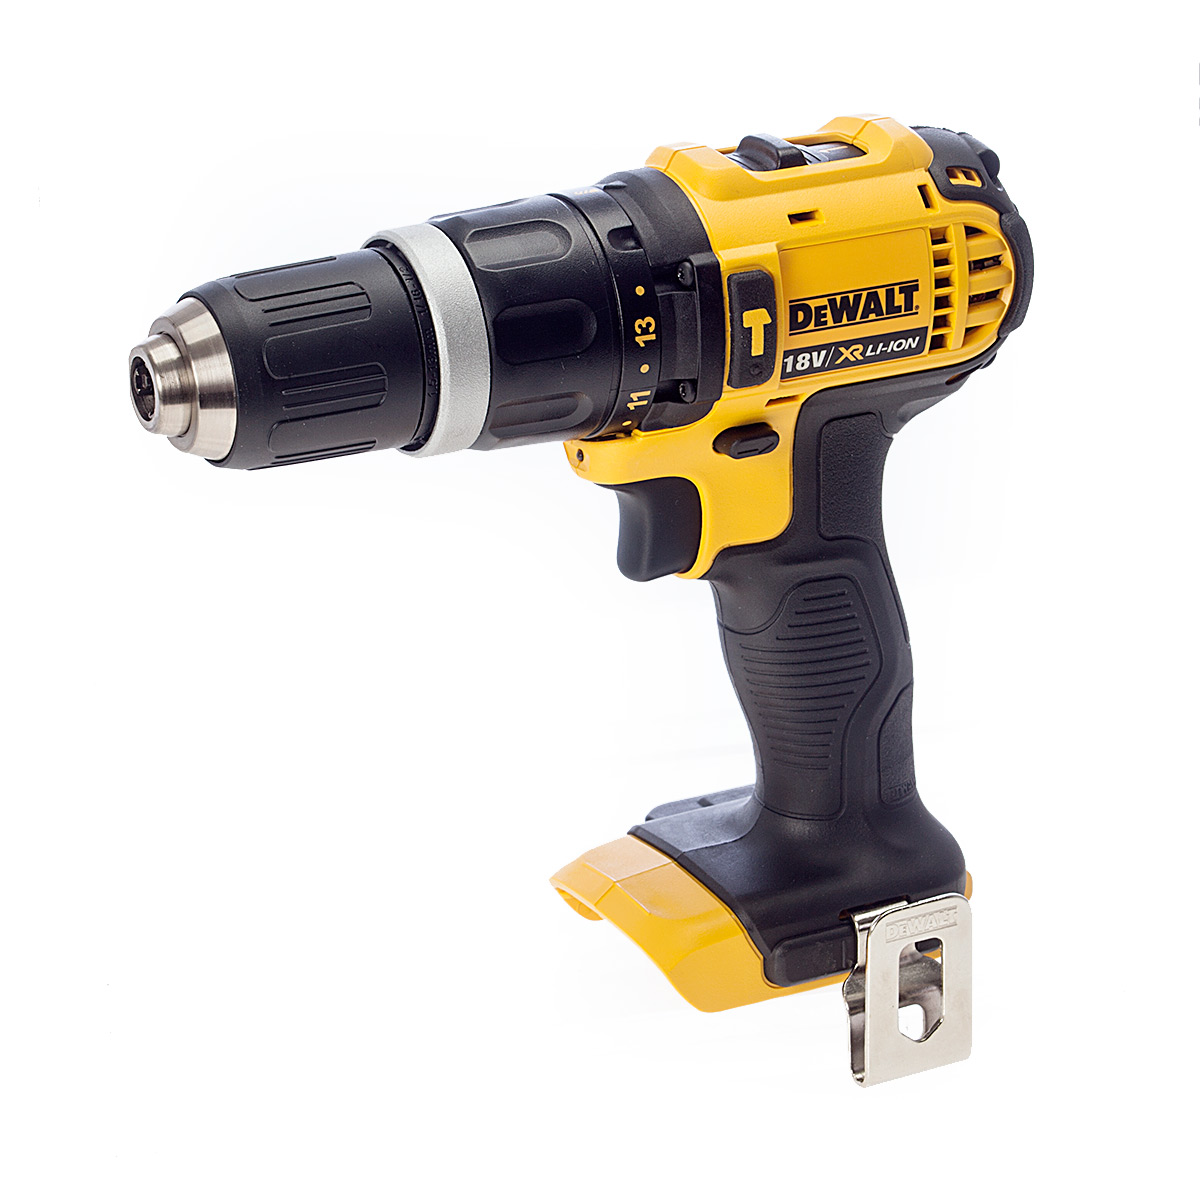 DEWALT DCD785N 18V XR 2 SPEED COMBI HAMMER DRILL (BODY ONLY)